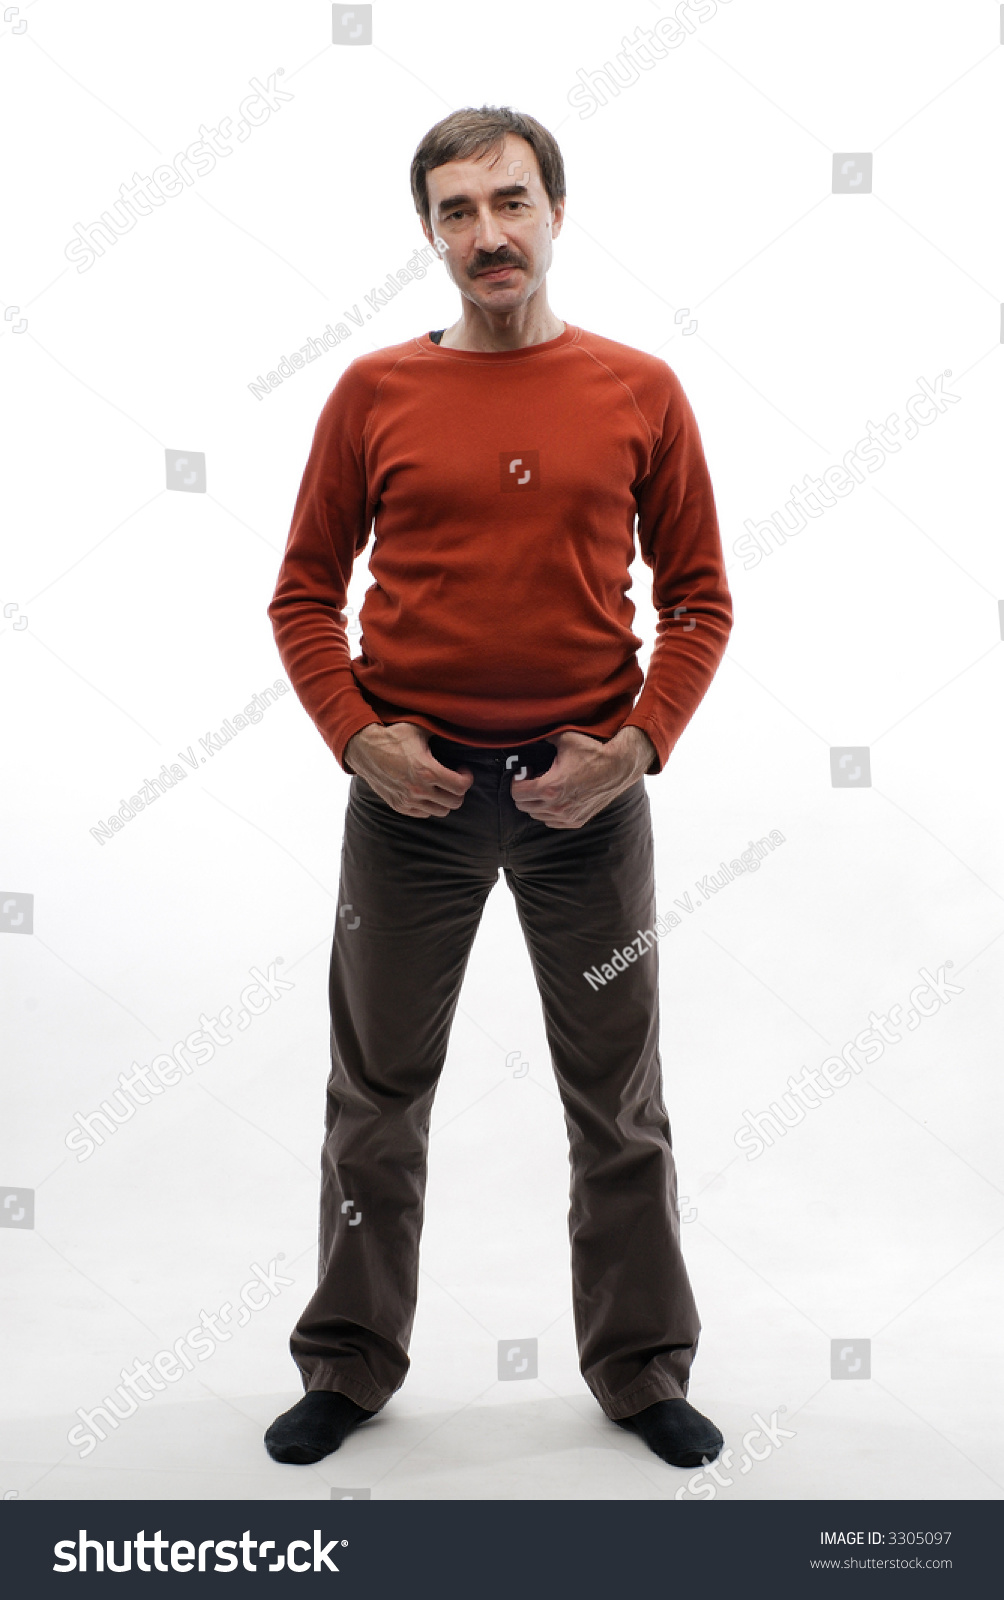 Man Red Sweater Brown Pants No Stock Photo 3305097 - Shutterstock